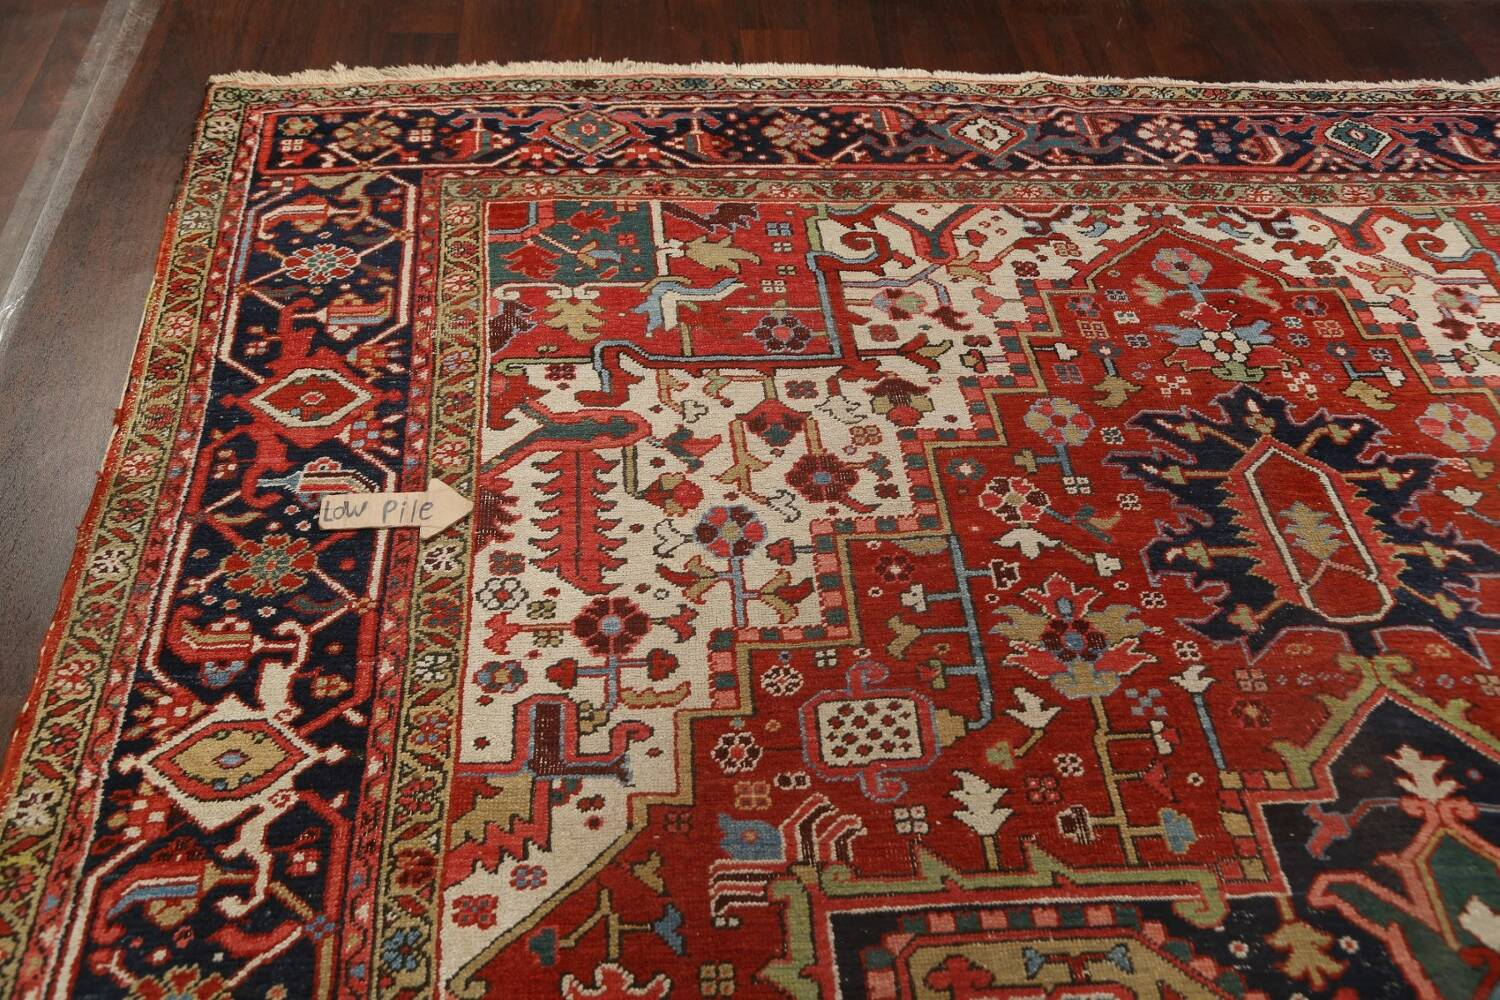 Pre-1900 Antique Vegetable Dye Heriz Serapi Persian Area Rug 10x13 image 14